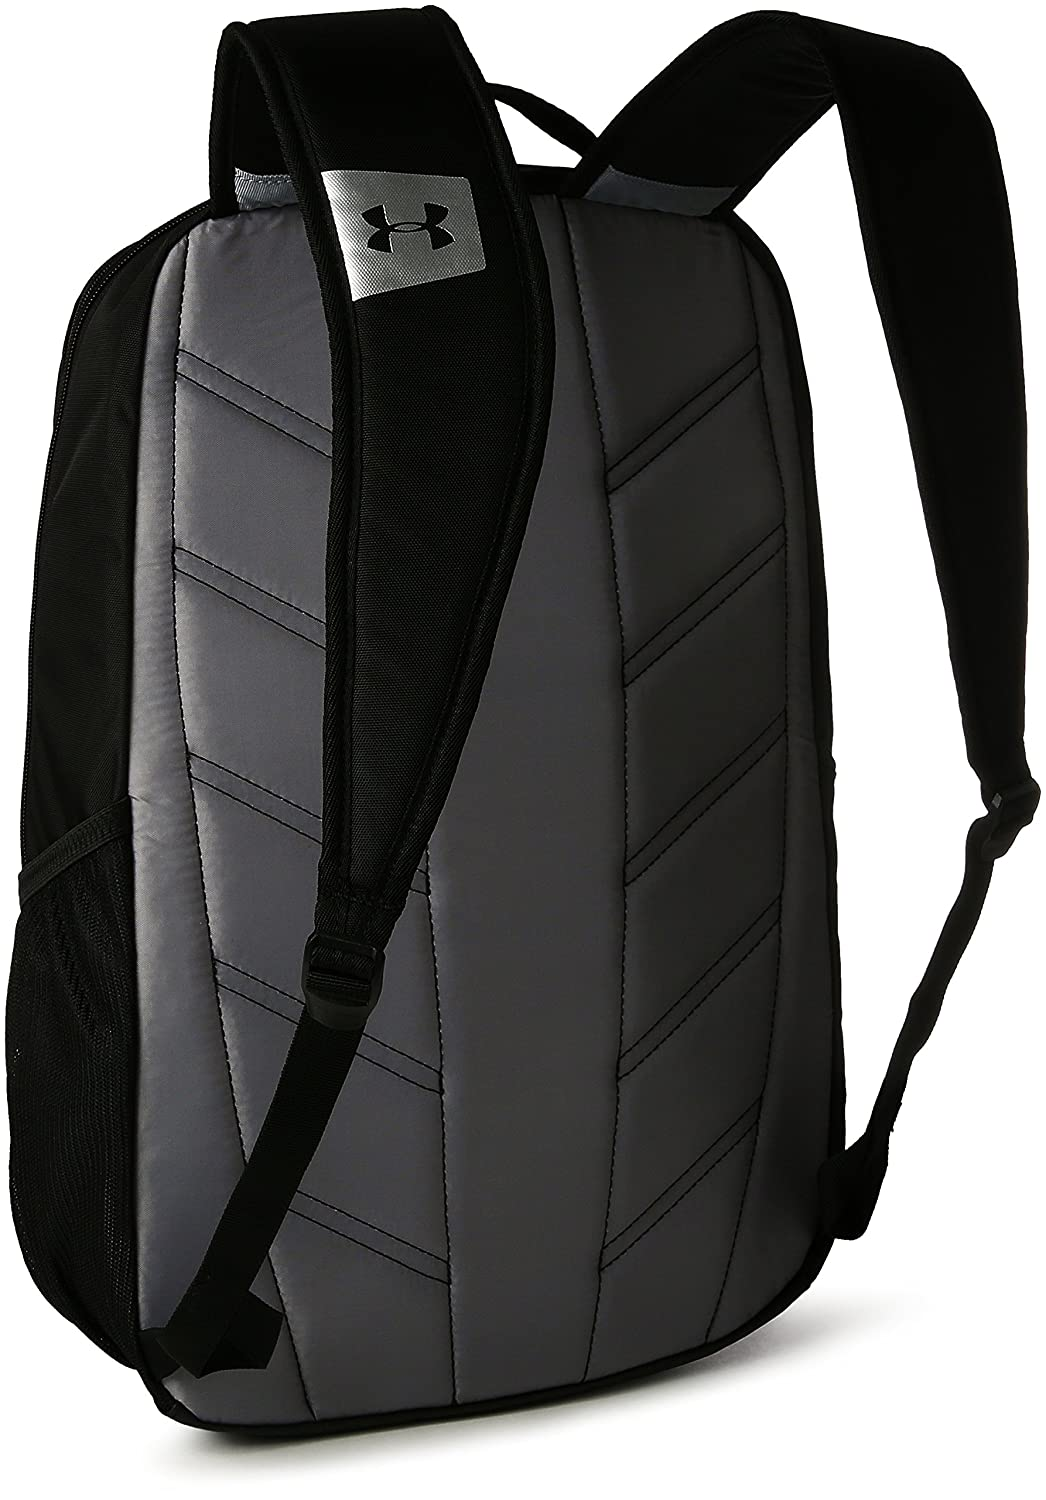 d77b9fe457 Under Armour Men s Hustle Ldwr Traditional Backpack  Amazon.co.uk  Sports    Outdoors